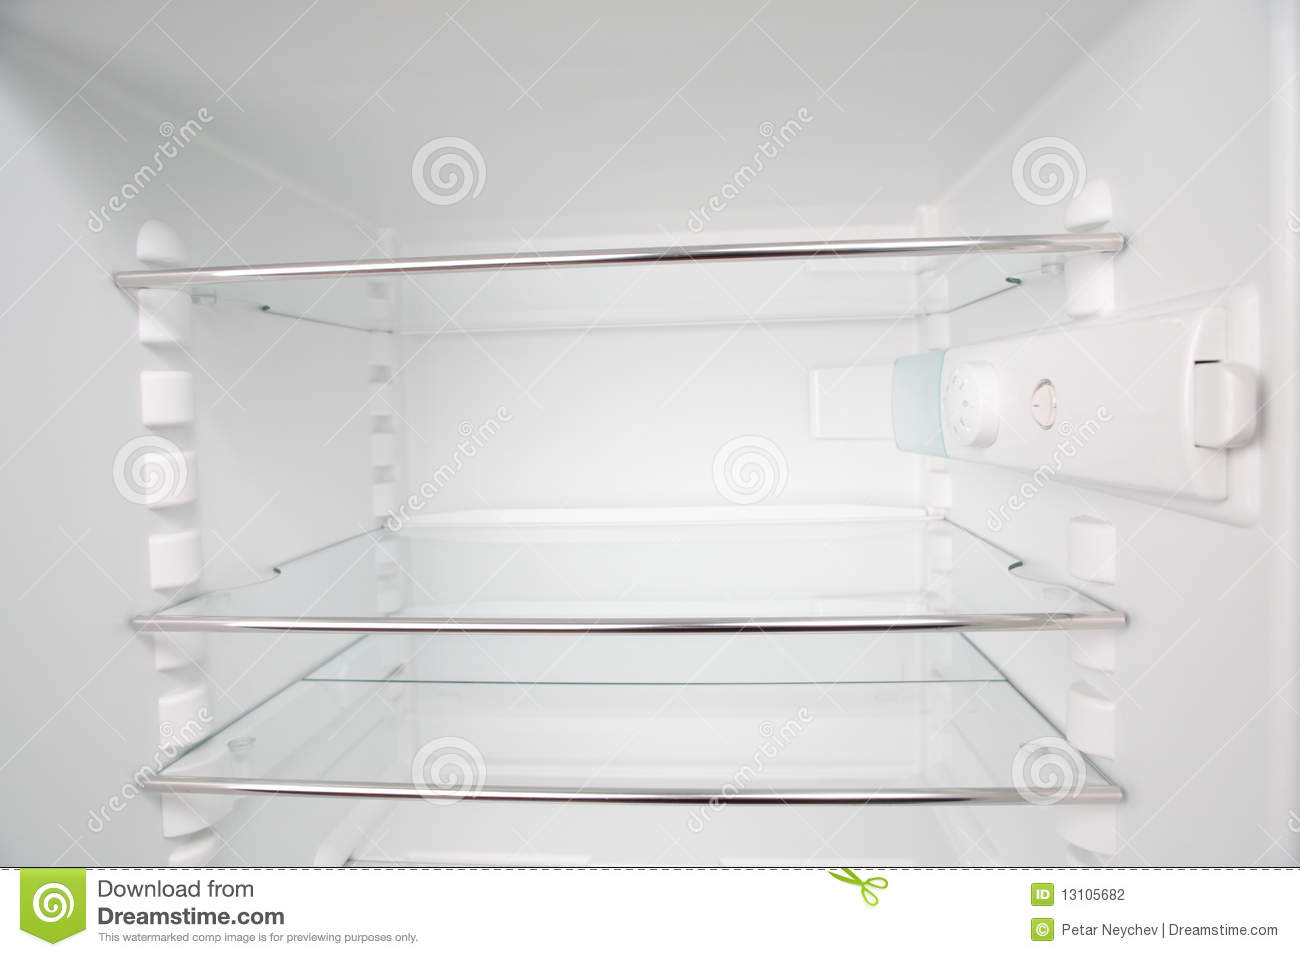 fridge shelves stock photo image of white inside empty 13105682 rh dreamstime com shelves for fridge doors shelves for fridge freezers lg ebay